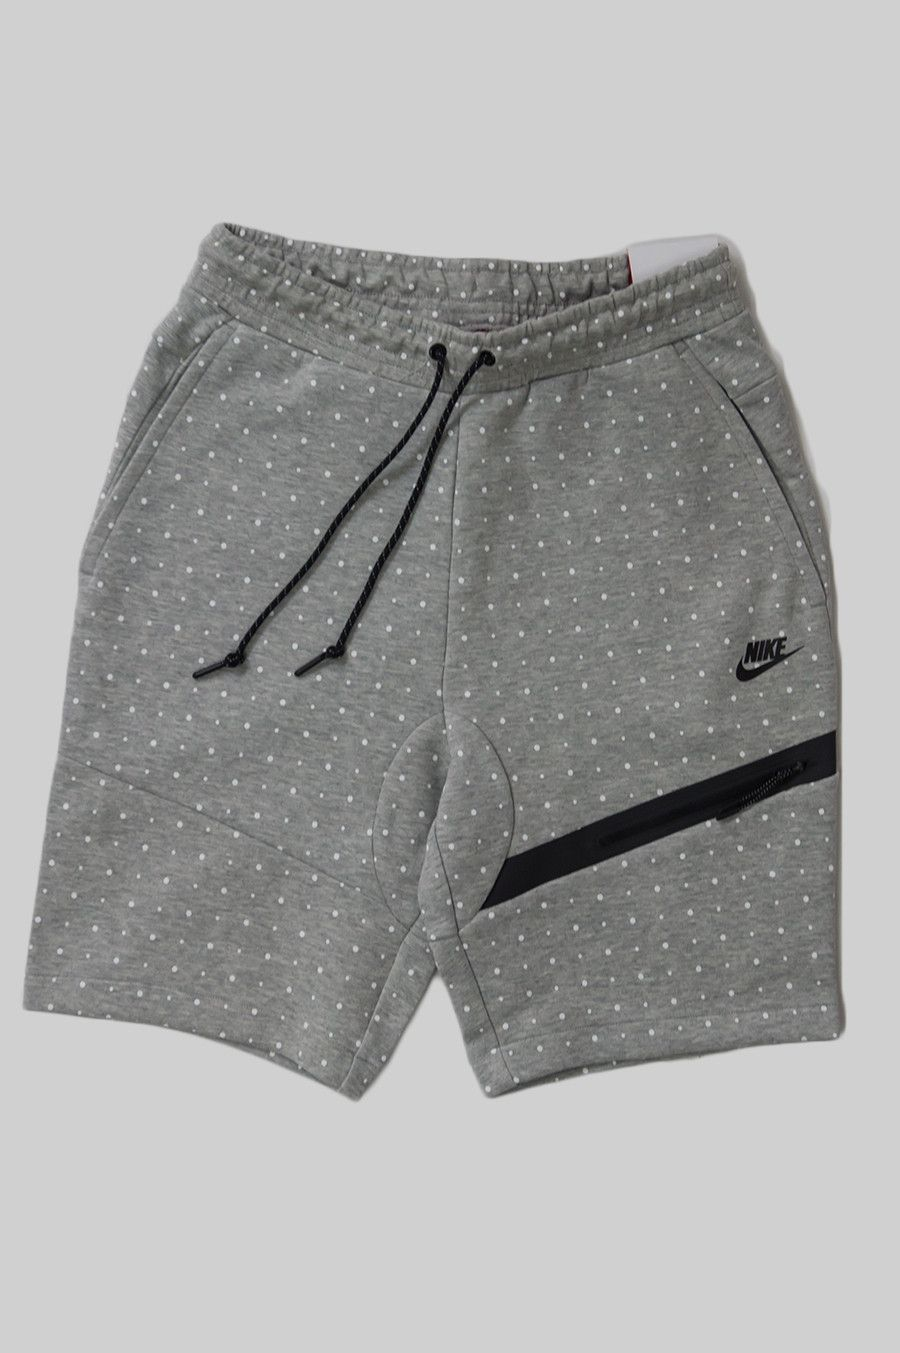 Nike tech fleece dot short medium grey white black blltons